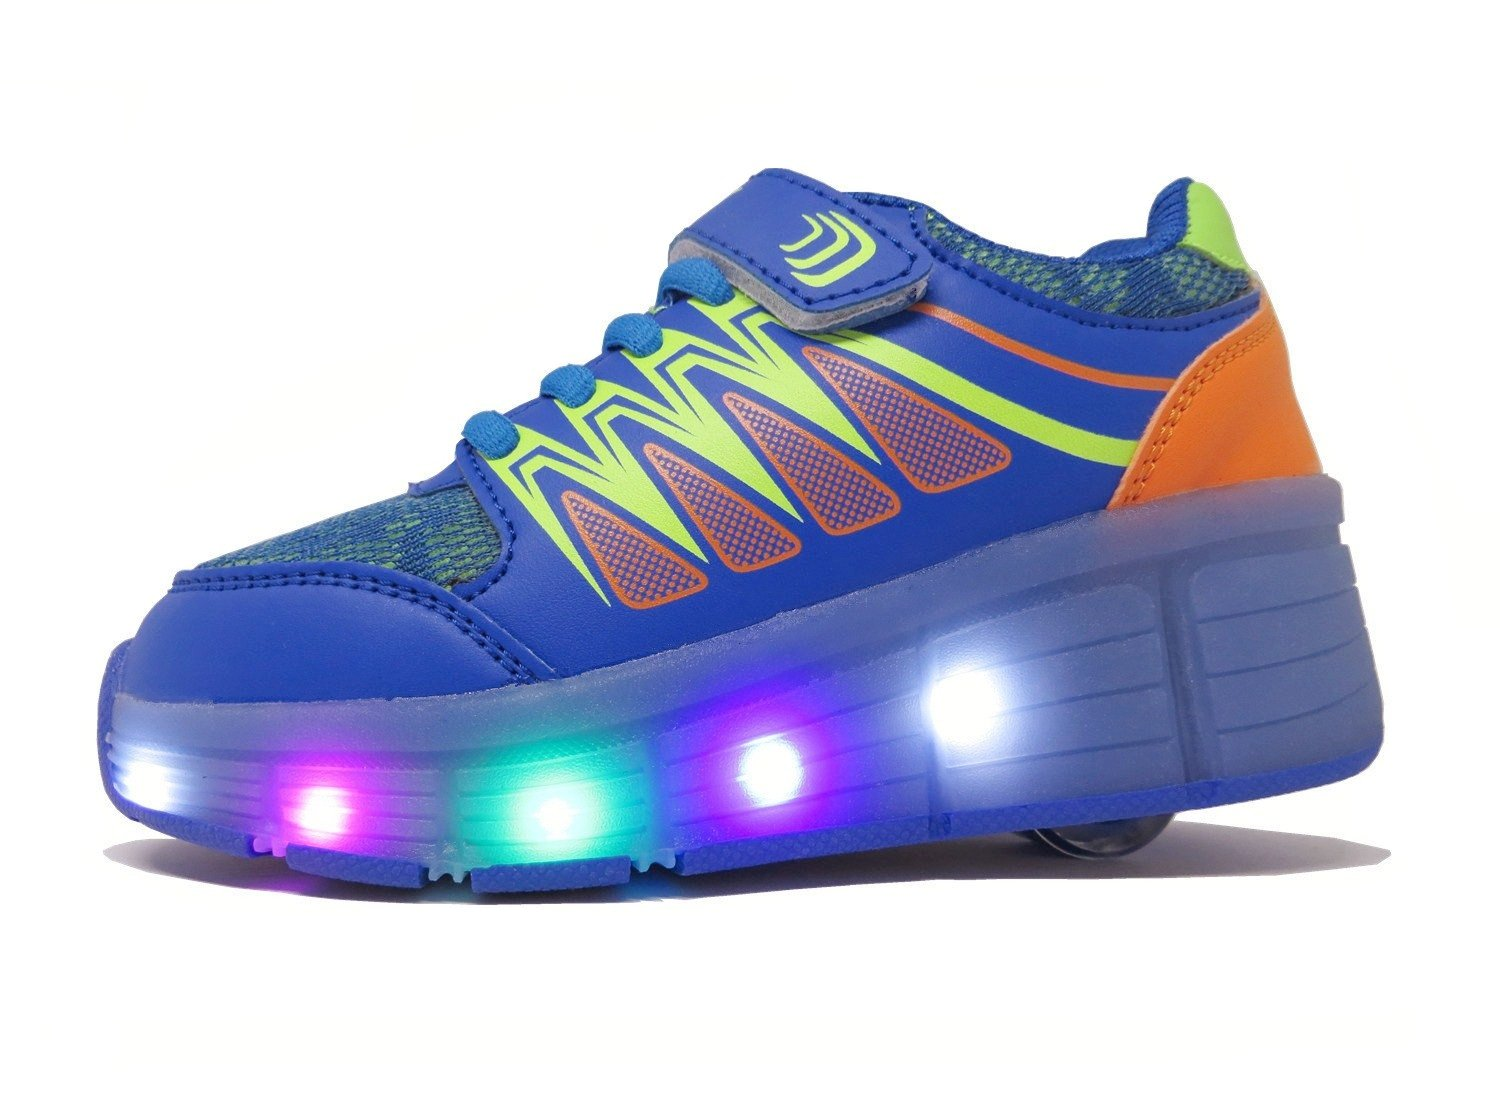 JOMIGLI PU Rechargeable Light Up Flashing Wheeled Heel Skate Shoes LED Roller Sneakers by JOMIGLI